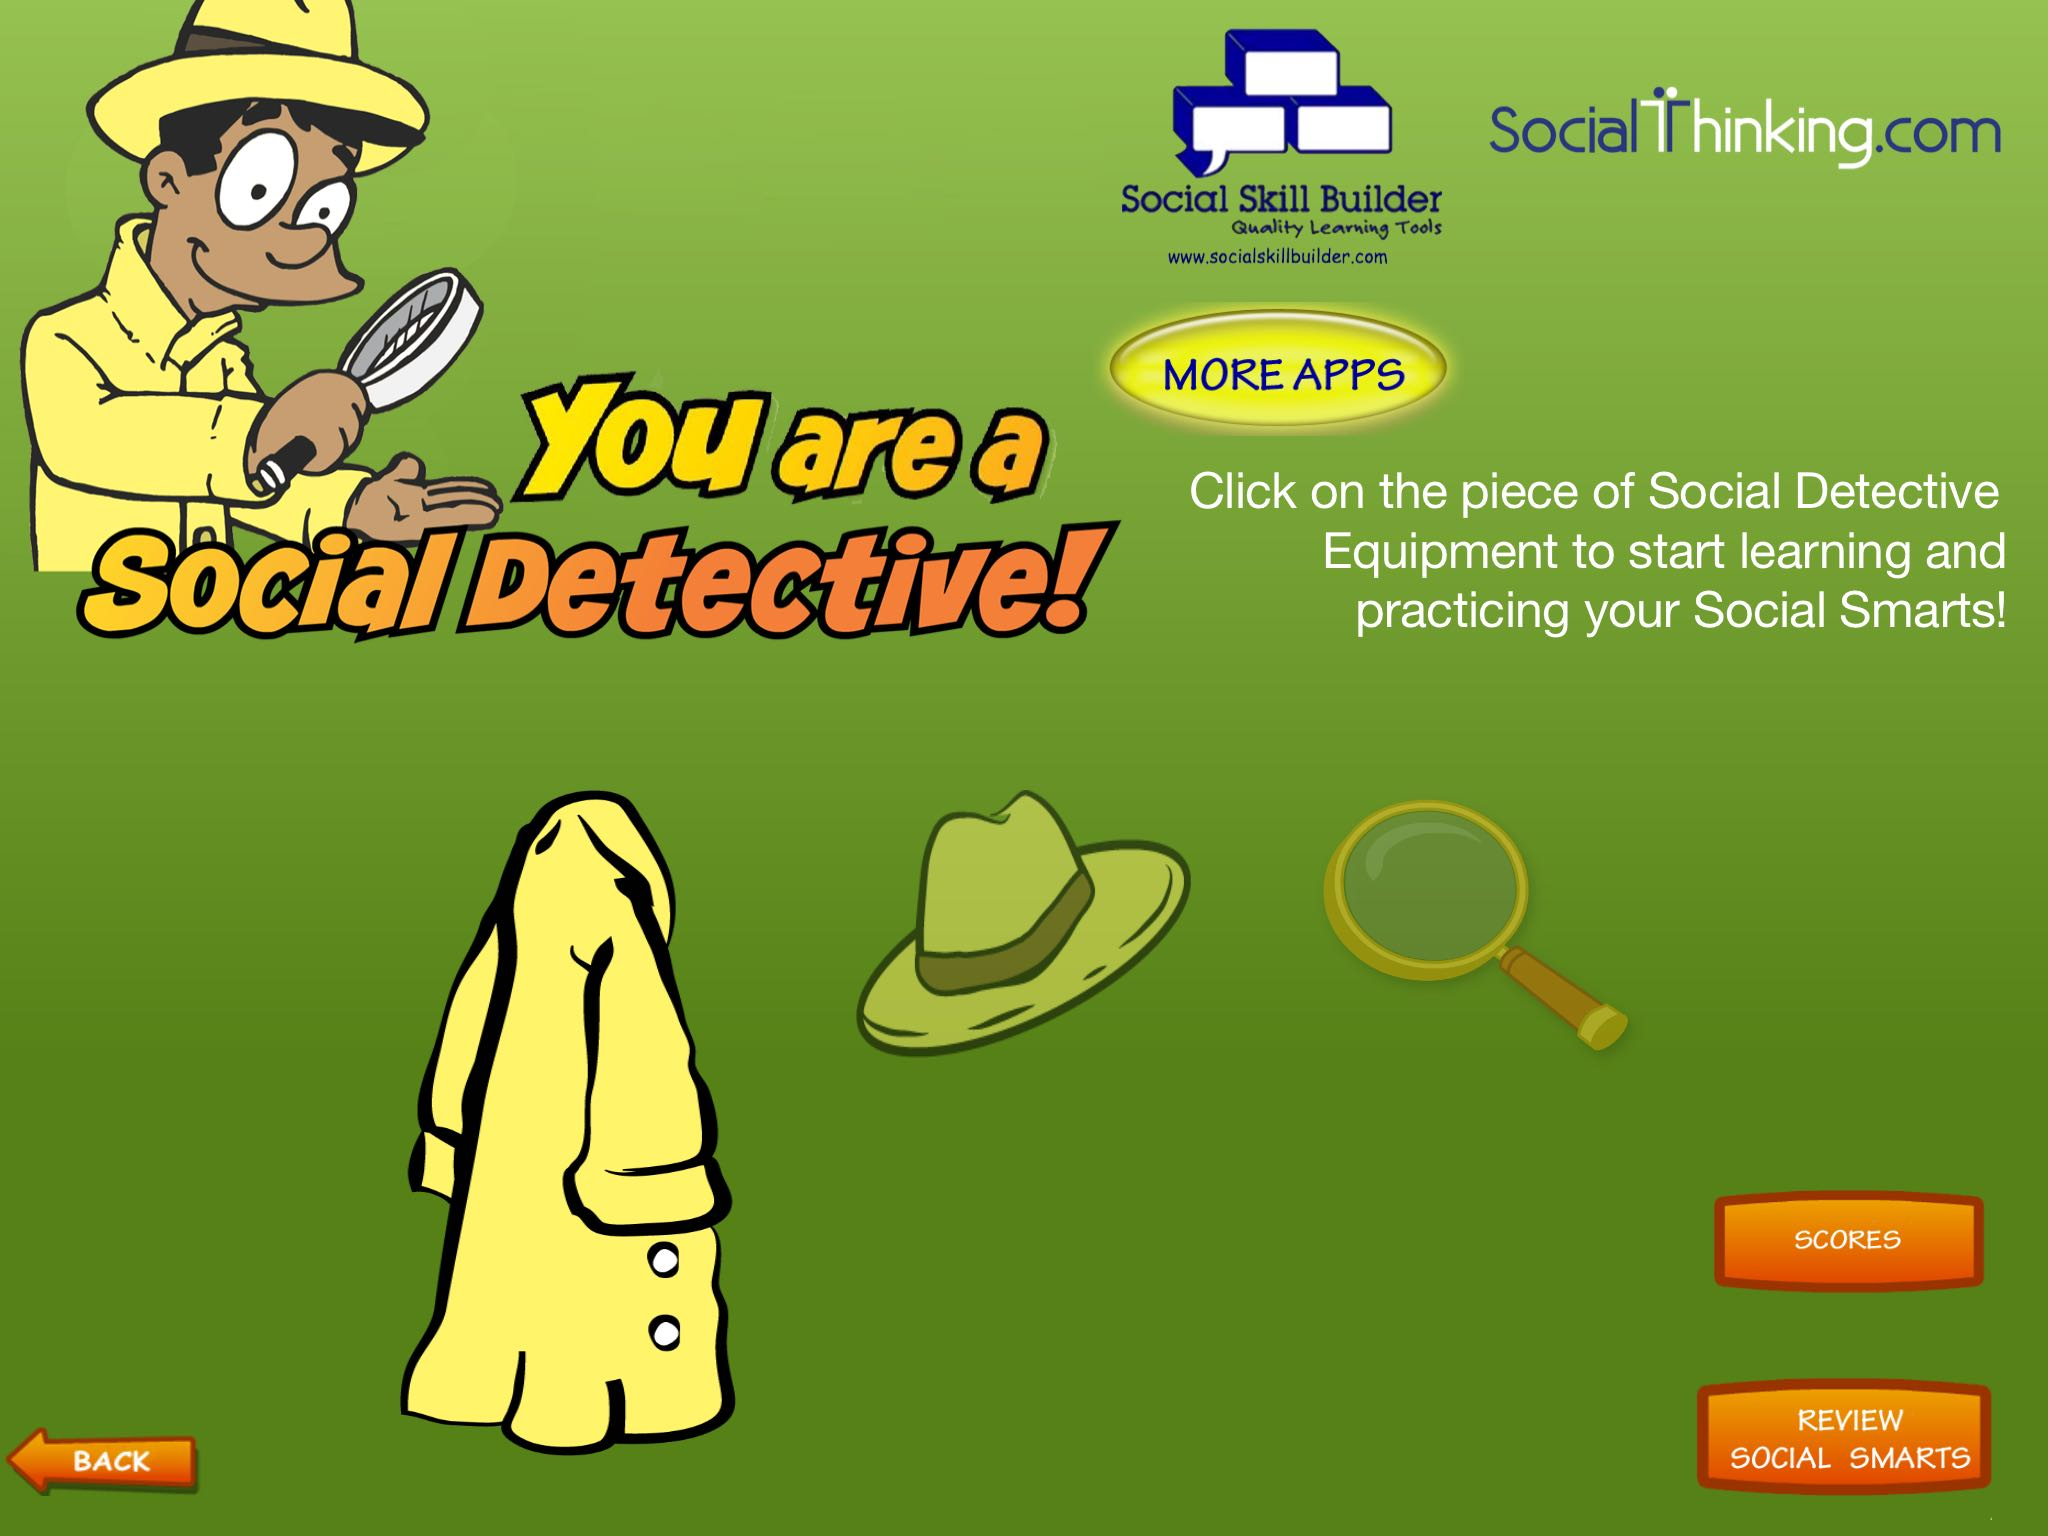 You are a Social Detective: Teaching Social Skills